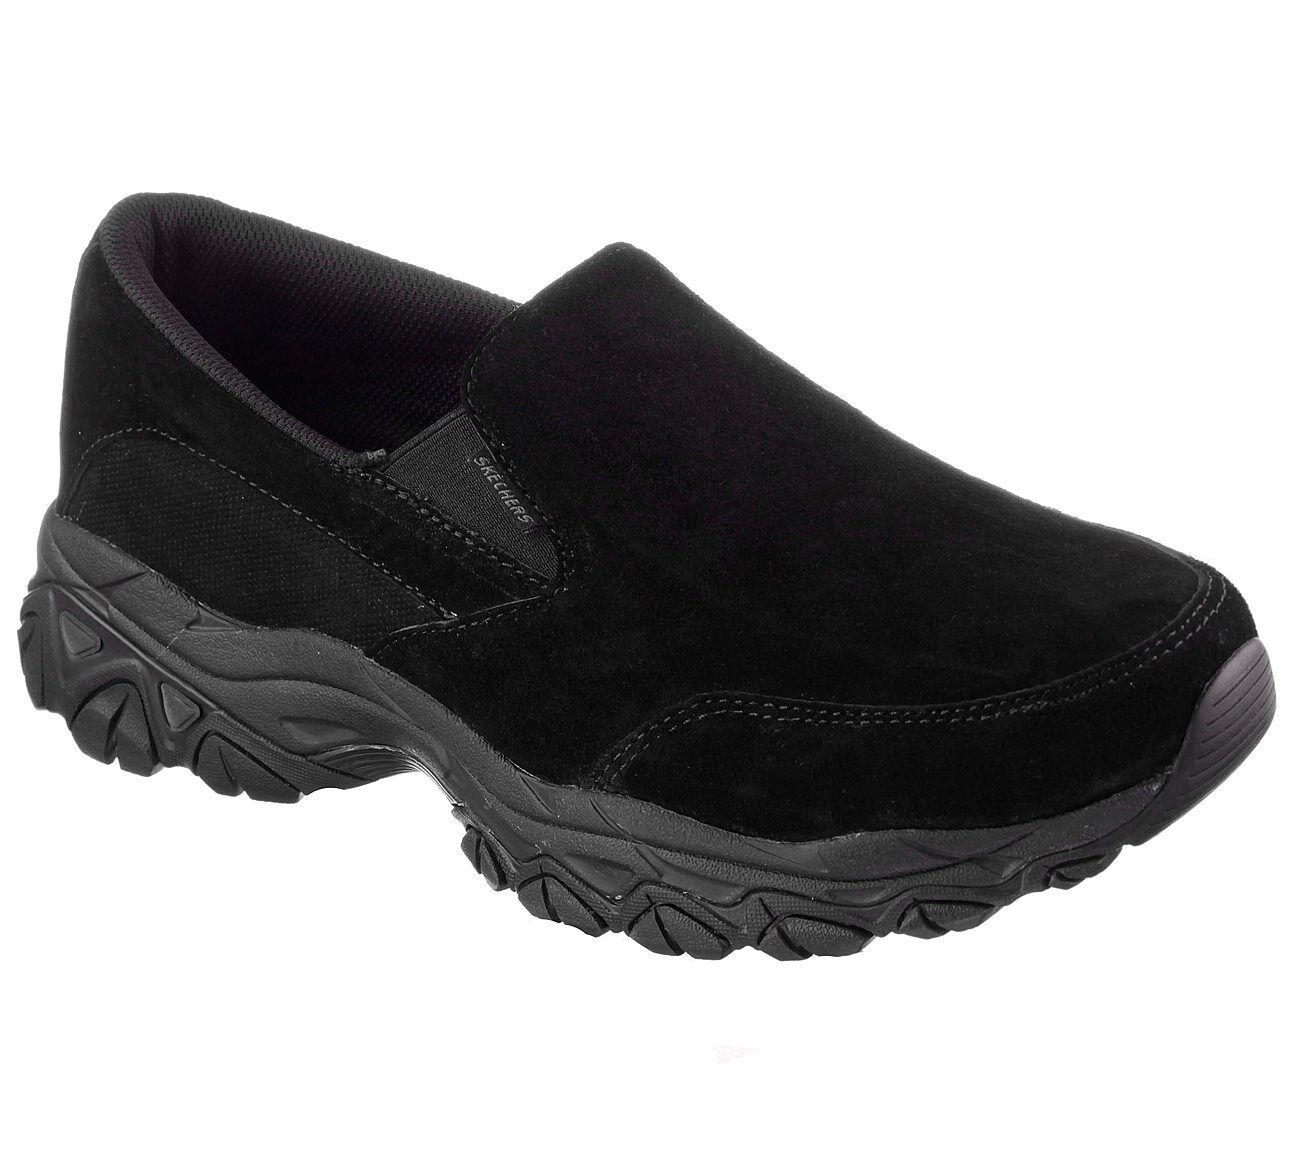 SKECHERS MEN'S BLACK Schuhe After Burn M.Fit RESTAMP MEMORY FOAM BLACK MEN'S BLACK 50123 BBK eecb7c